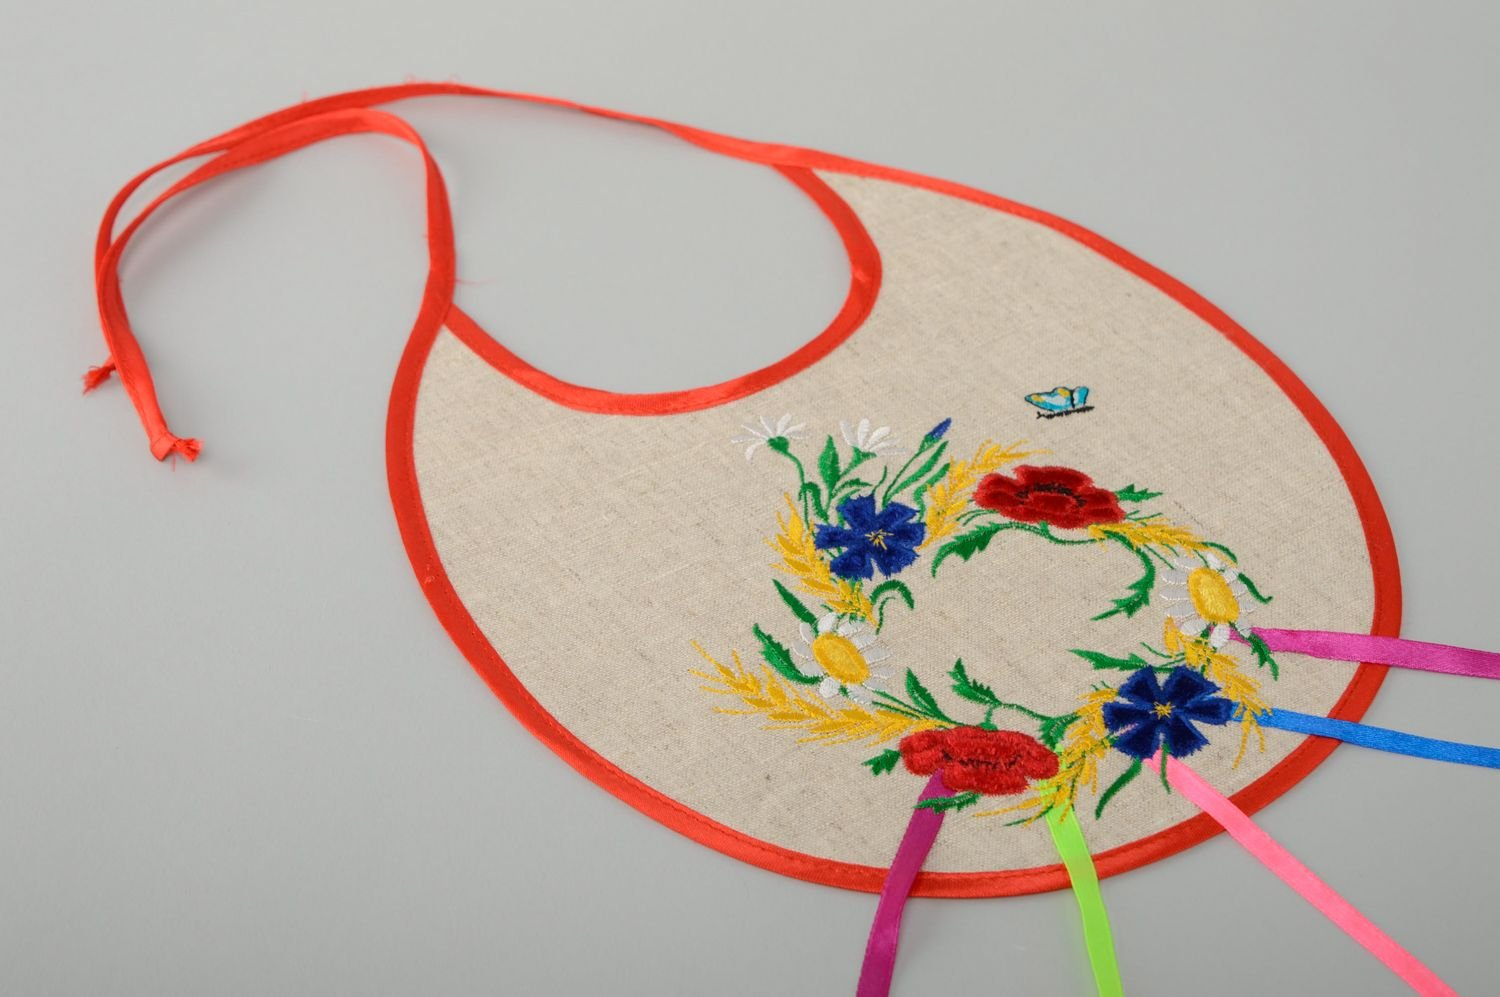 Amazon handmade fabric bib with applique work and embroidery